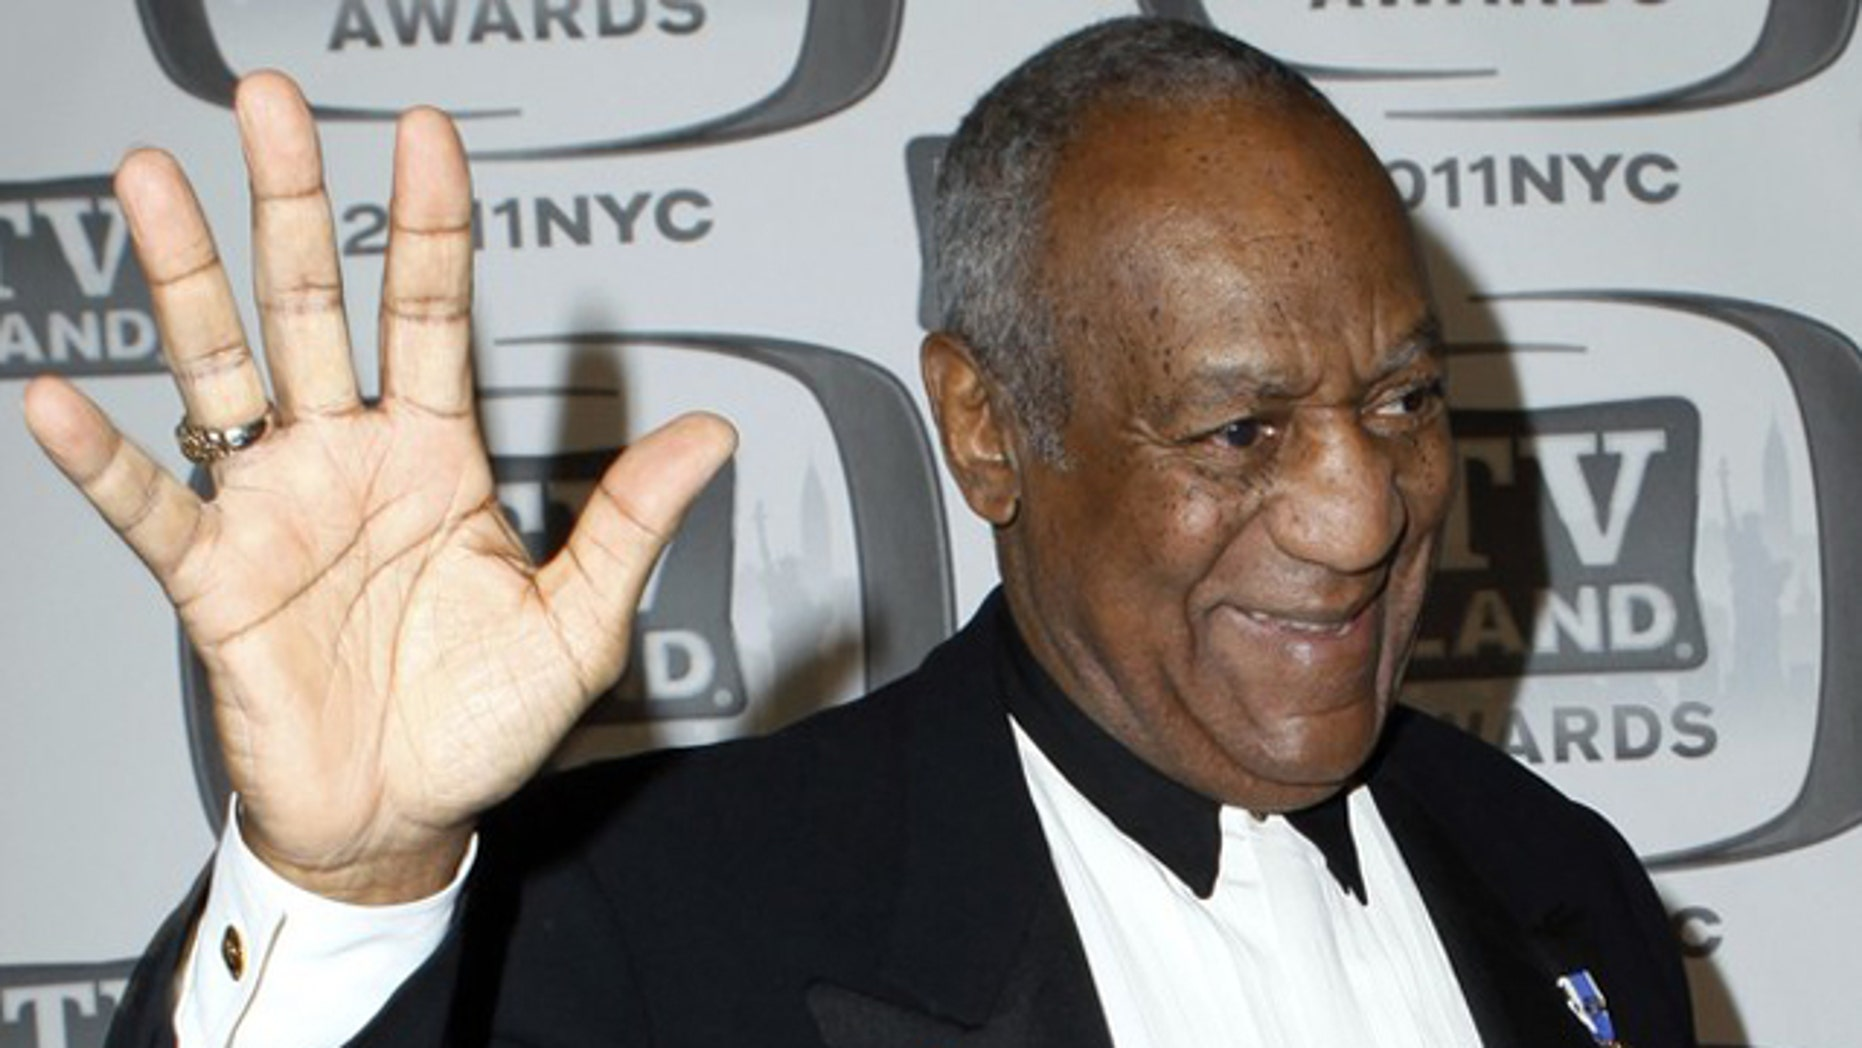 """April 10, 2011.Actor Bill Cosby arrives at the """"TV Land Awards 2011"""" in New York City."""